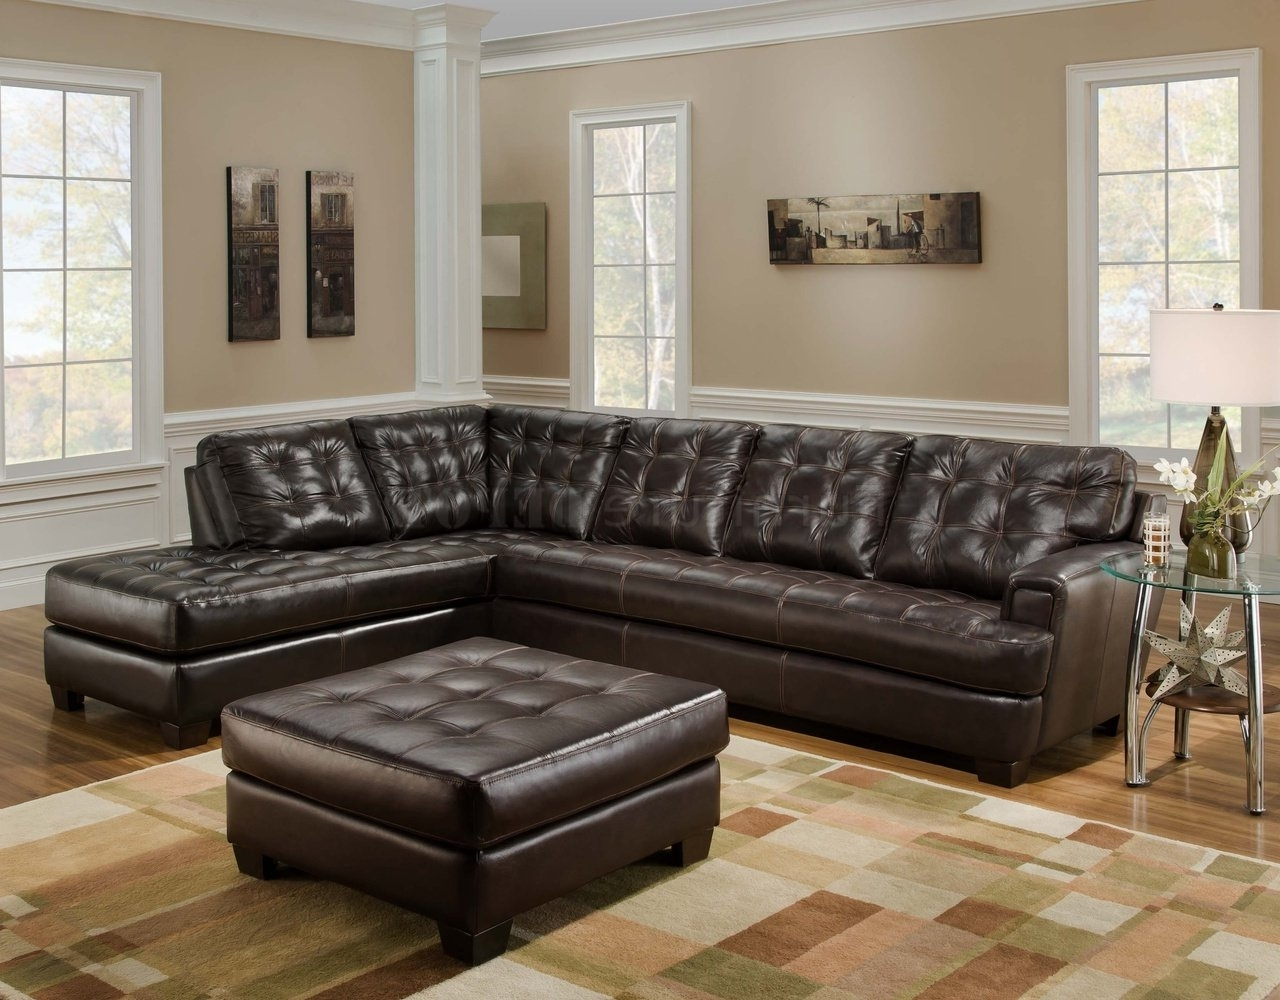 Dark Brown Leather Tufted Sectional Chaise Lounge Sofa With In Best And Newest Leather Sectionals With Ottoman (View 10 of 15)